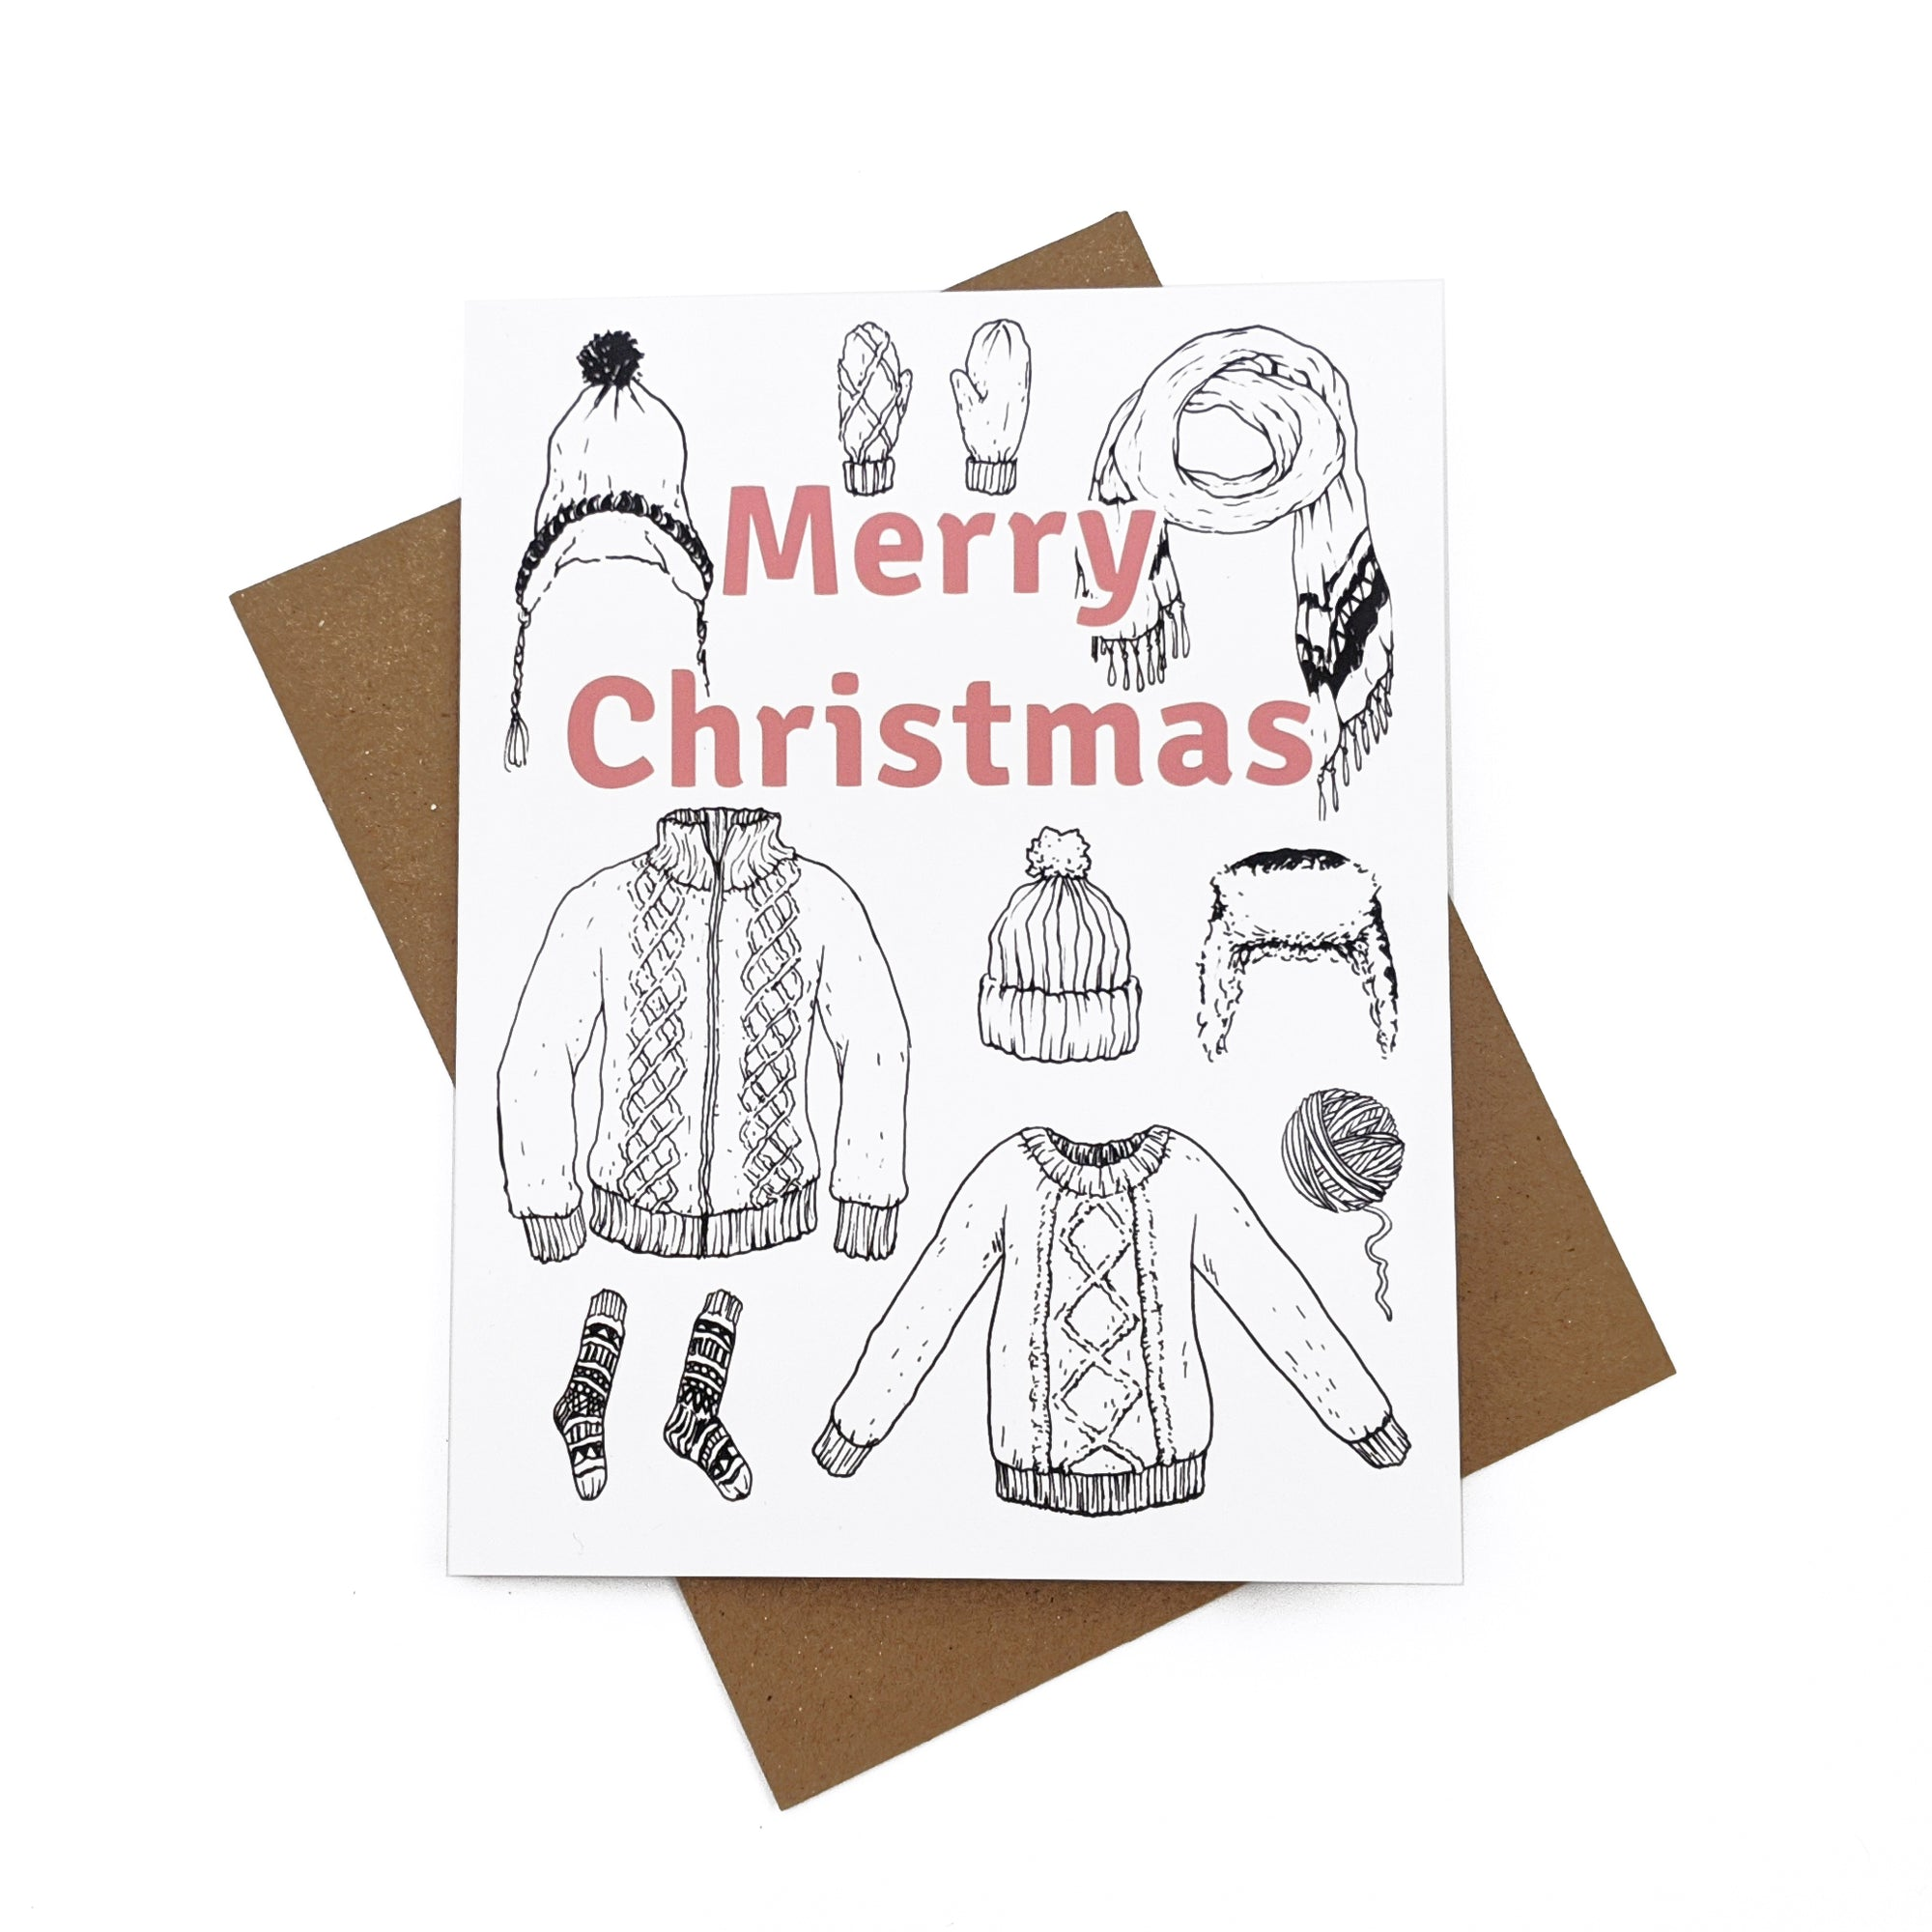 Merry Christmas - Greeting Card